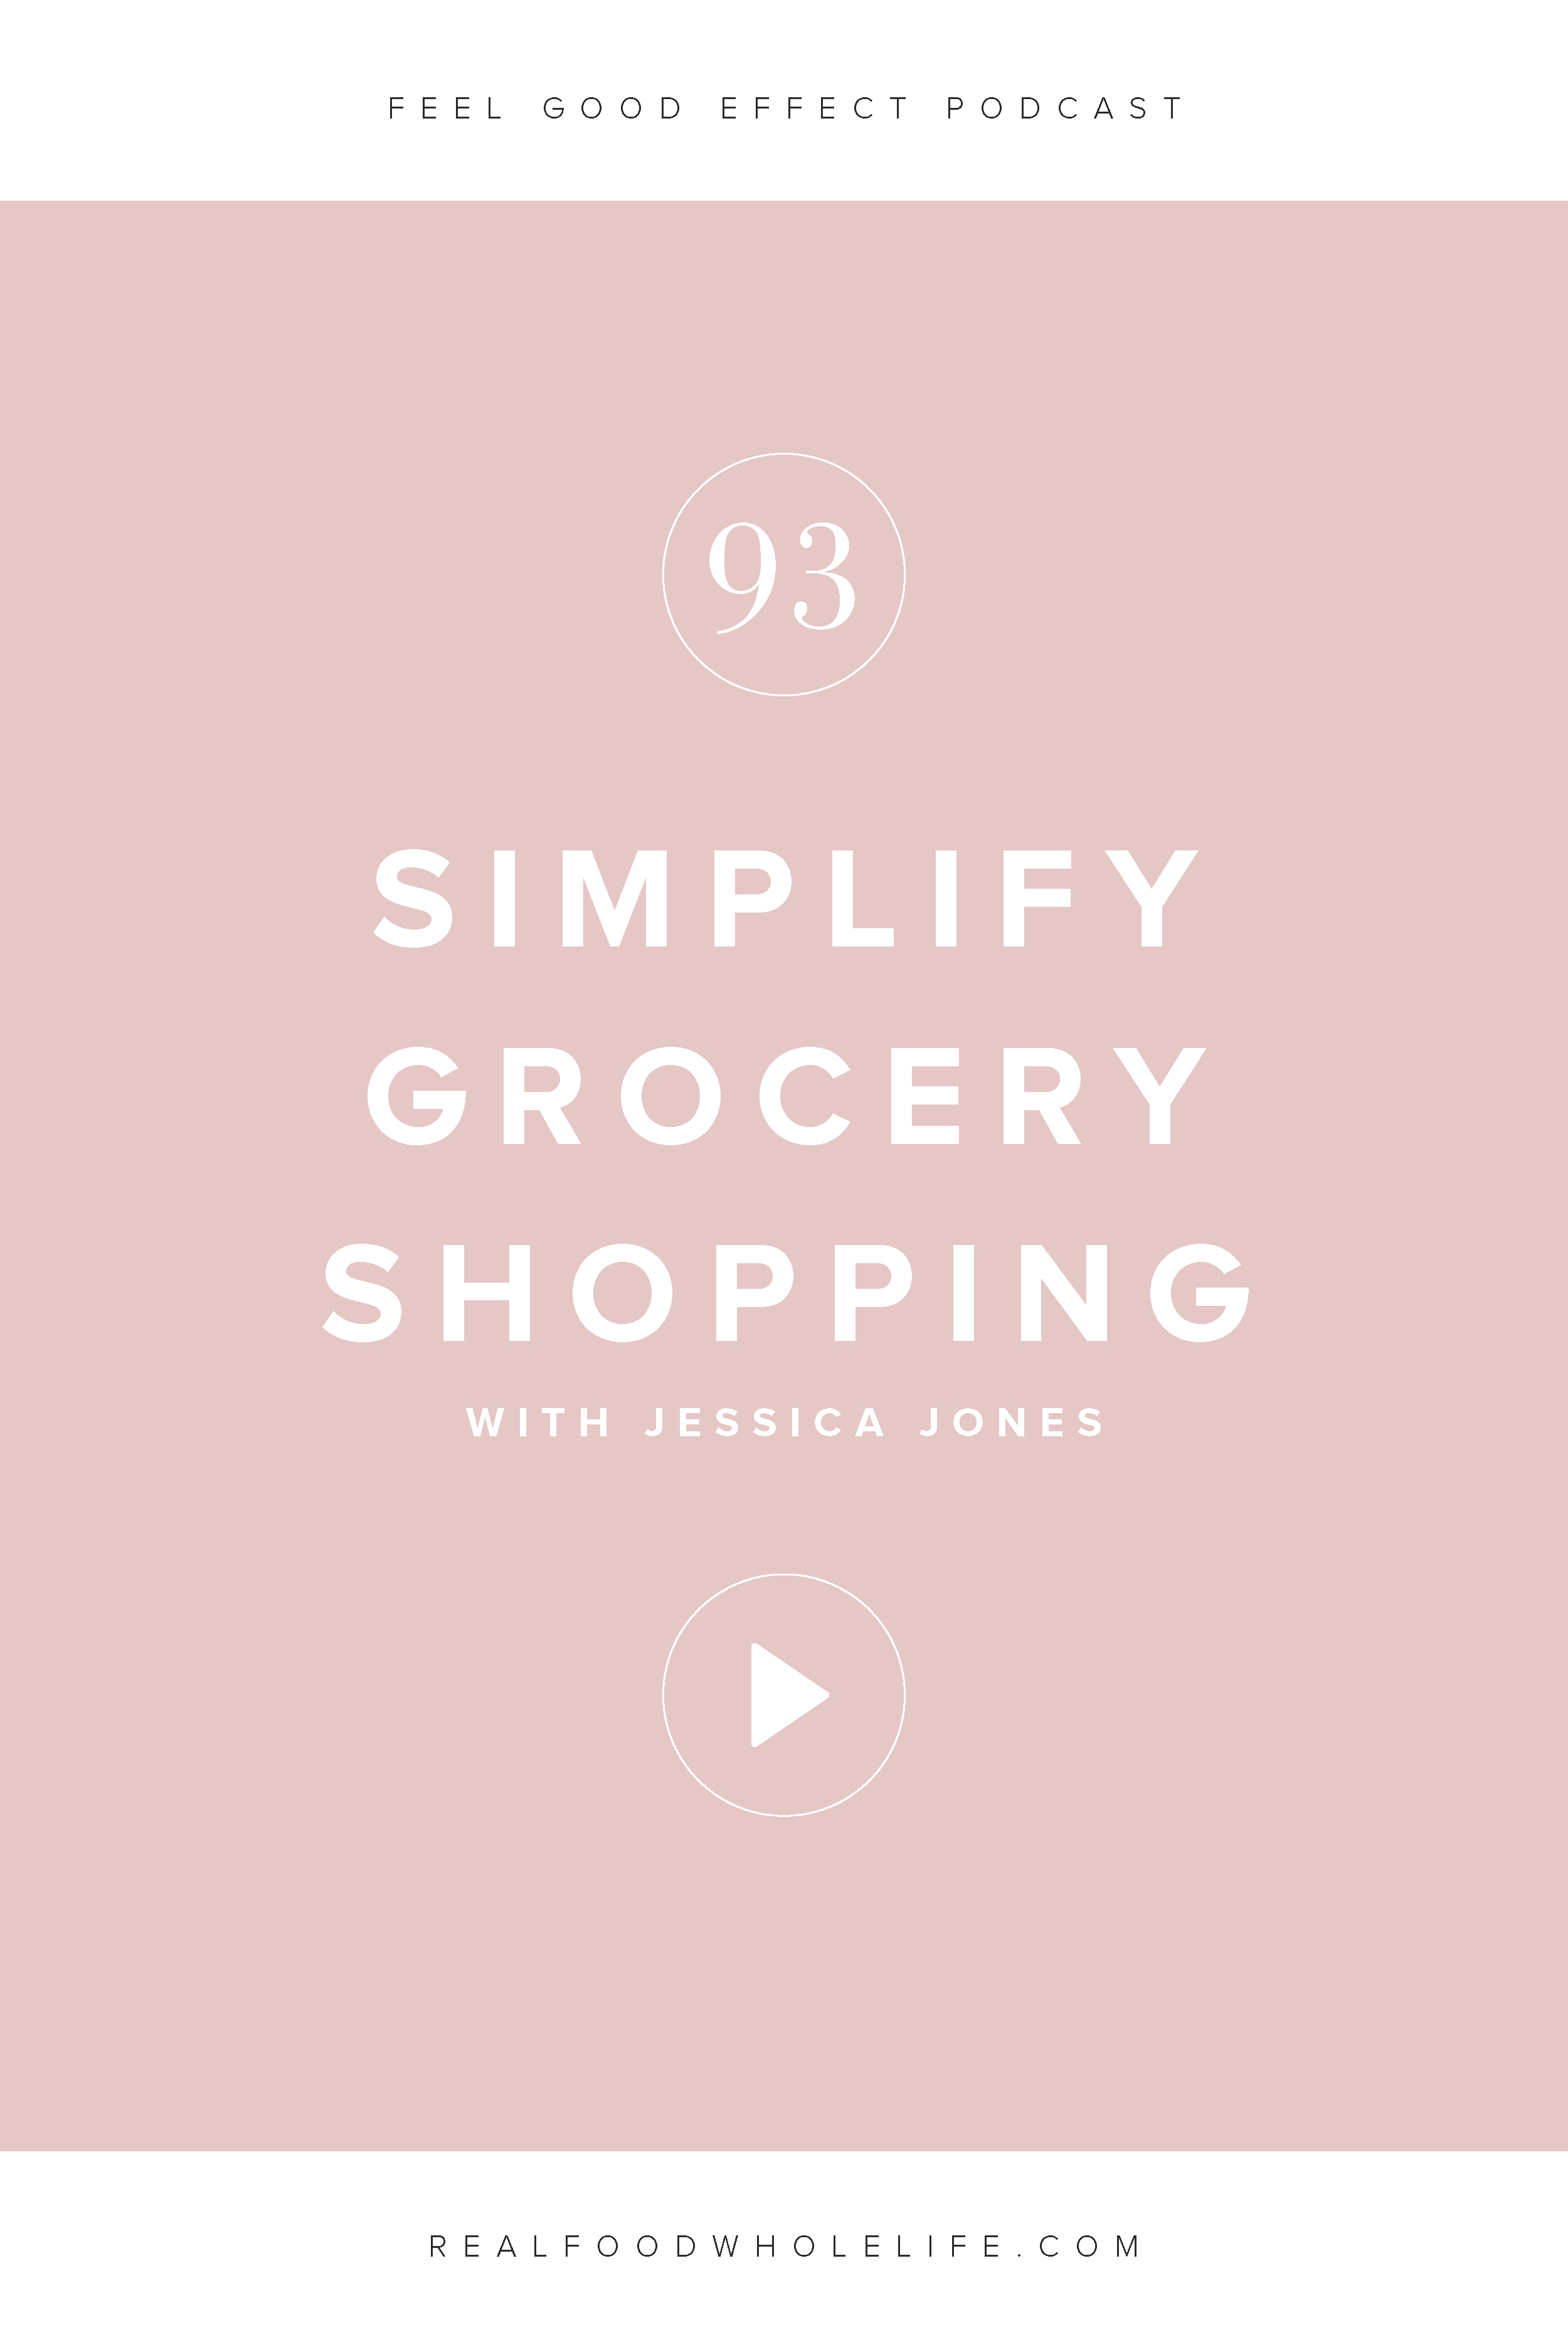 Get back to basics on healthy eating and breaking down how to simplify healthy grocery shopping with, Jessica Jones, from Food Heaven Made Easy. #realfoodwholelife #feelgoodeffect #gentlewellness #simplify #simpled #living #grocerylist #healthyeating #balance #wellness